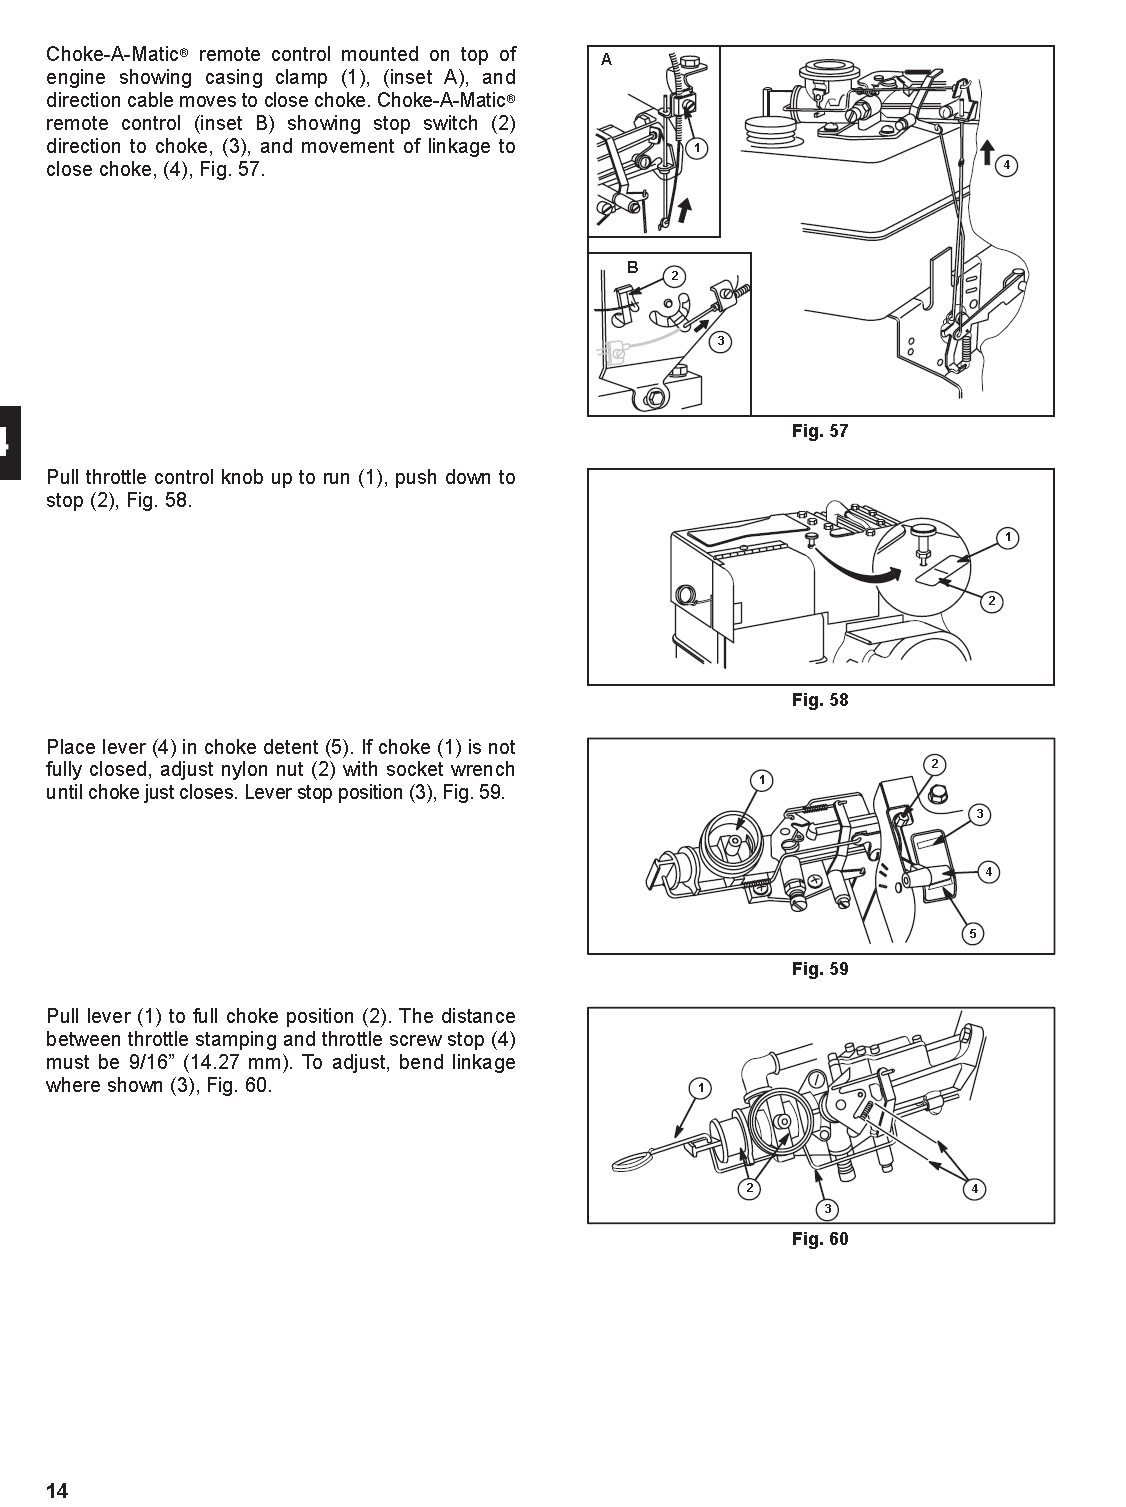 2011 11 08_145626_page14 troy bilt pony wiring diagram 13wn77ks011 gandul 45 77 79 119  at bayanpartner.co